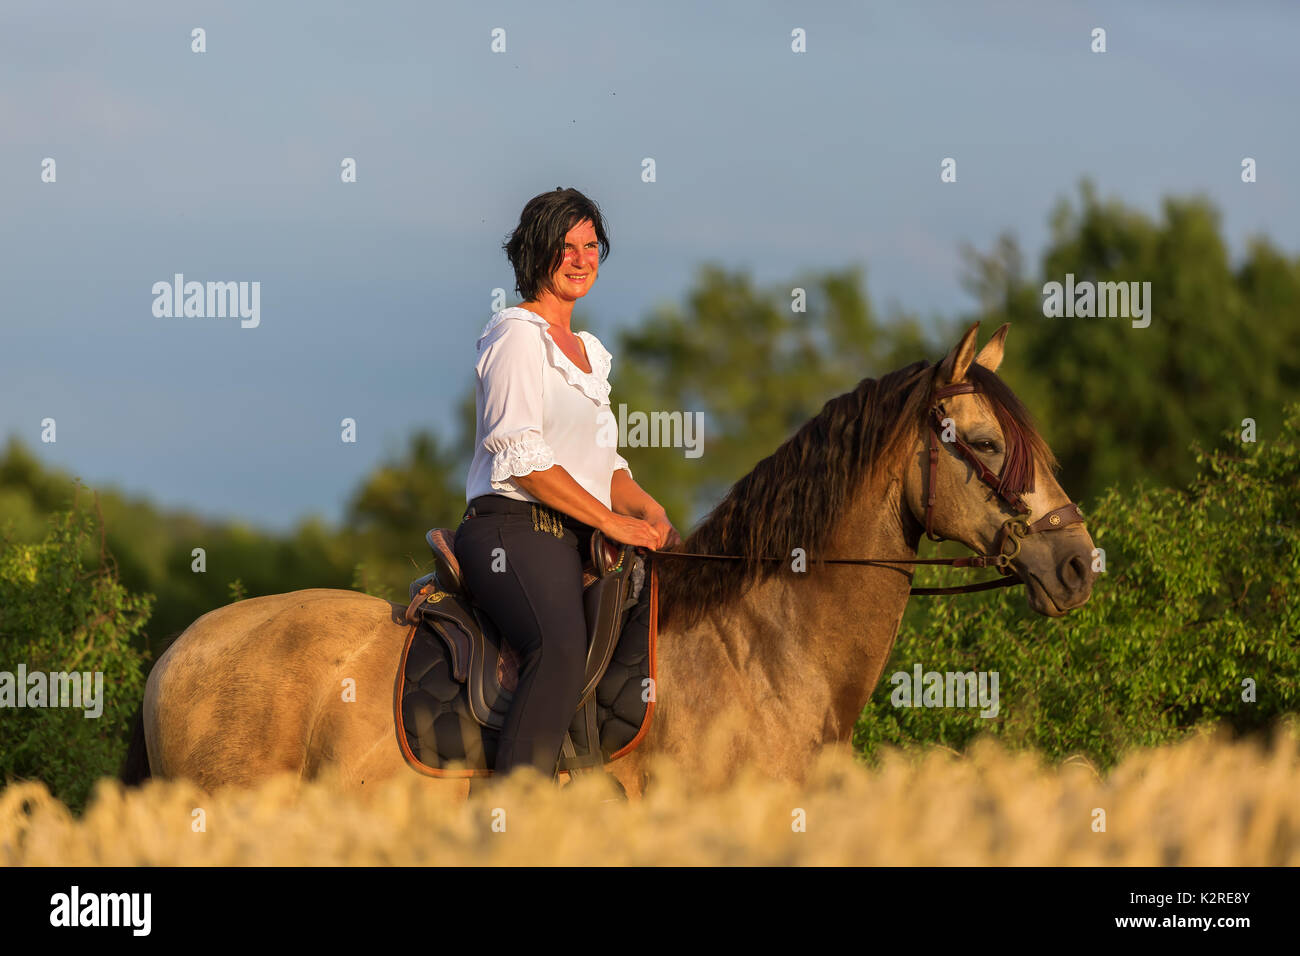 portrait picture of a mature woman on an Andalusian horse - Stock Image